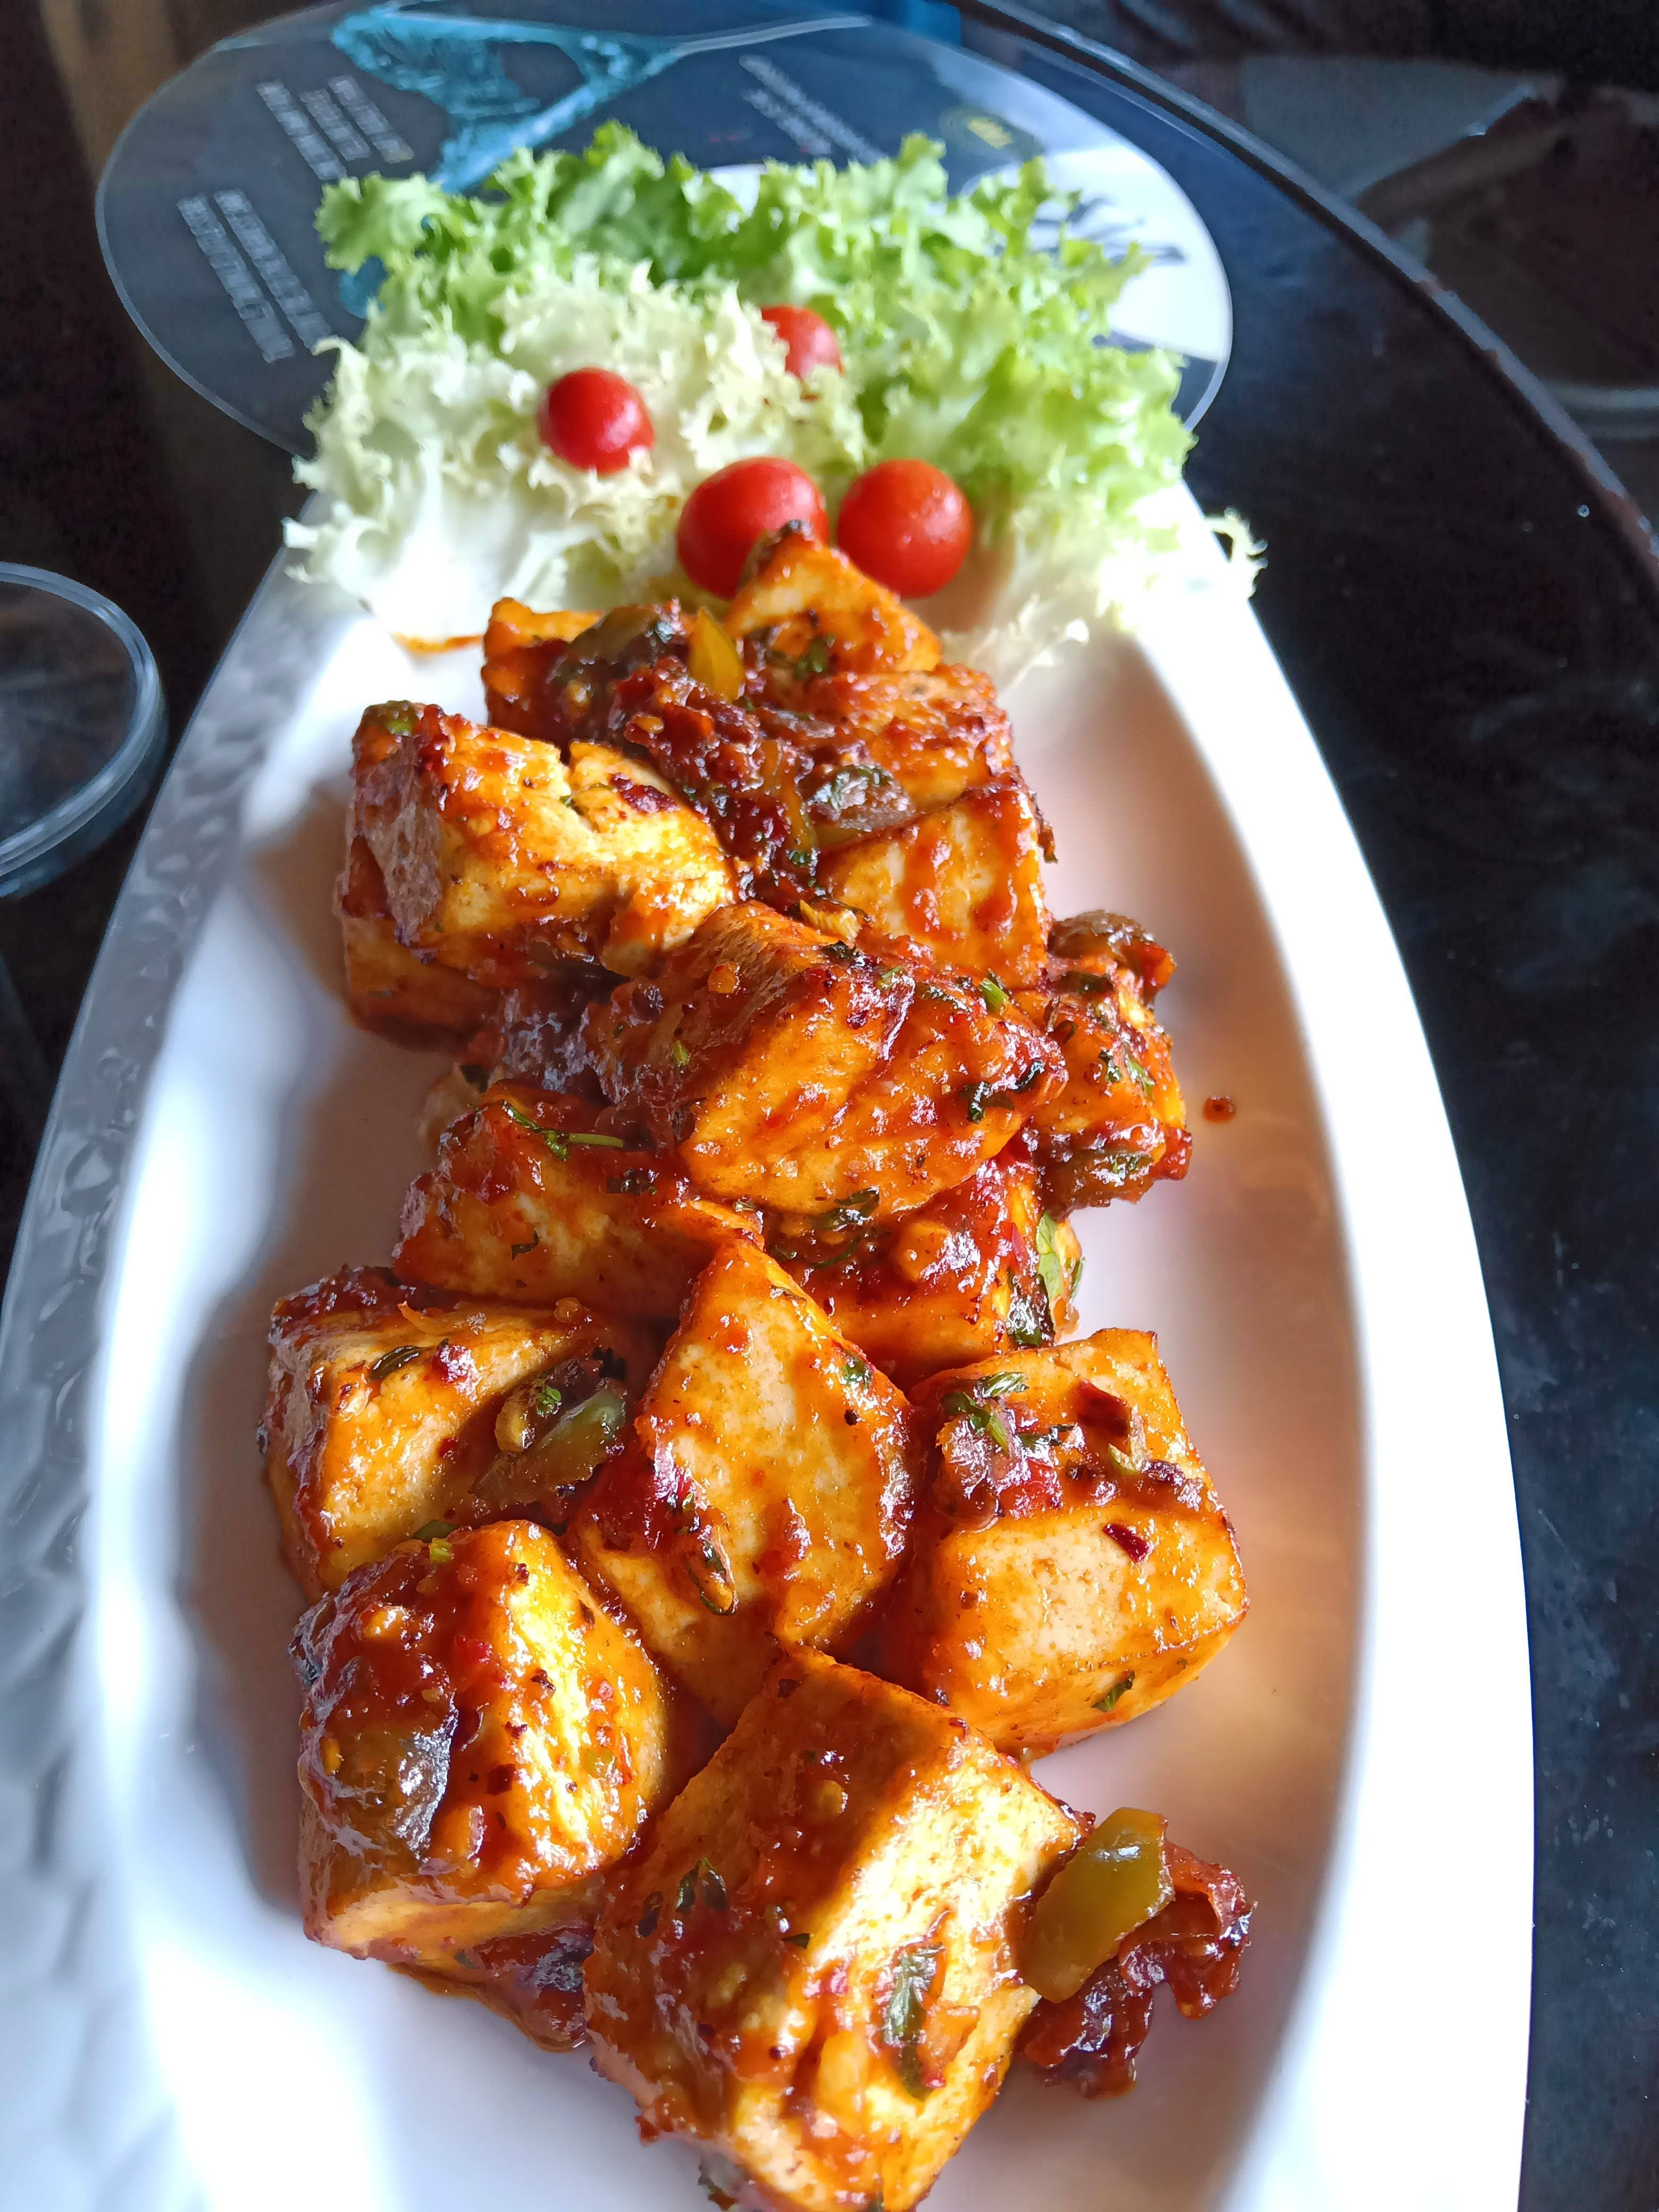 Dish,Food,Cuisine,Ingredient,Meat,General tso's chicken,Produce,Sweet and sour chicken,Fried food,Recipe